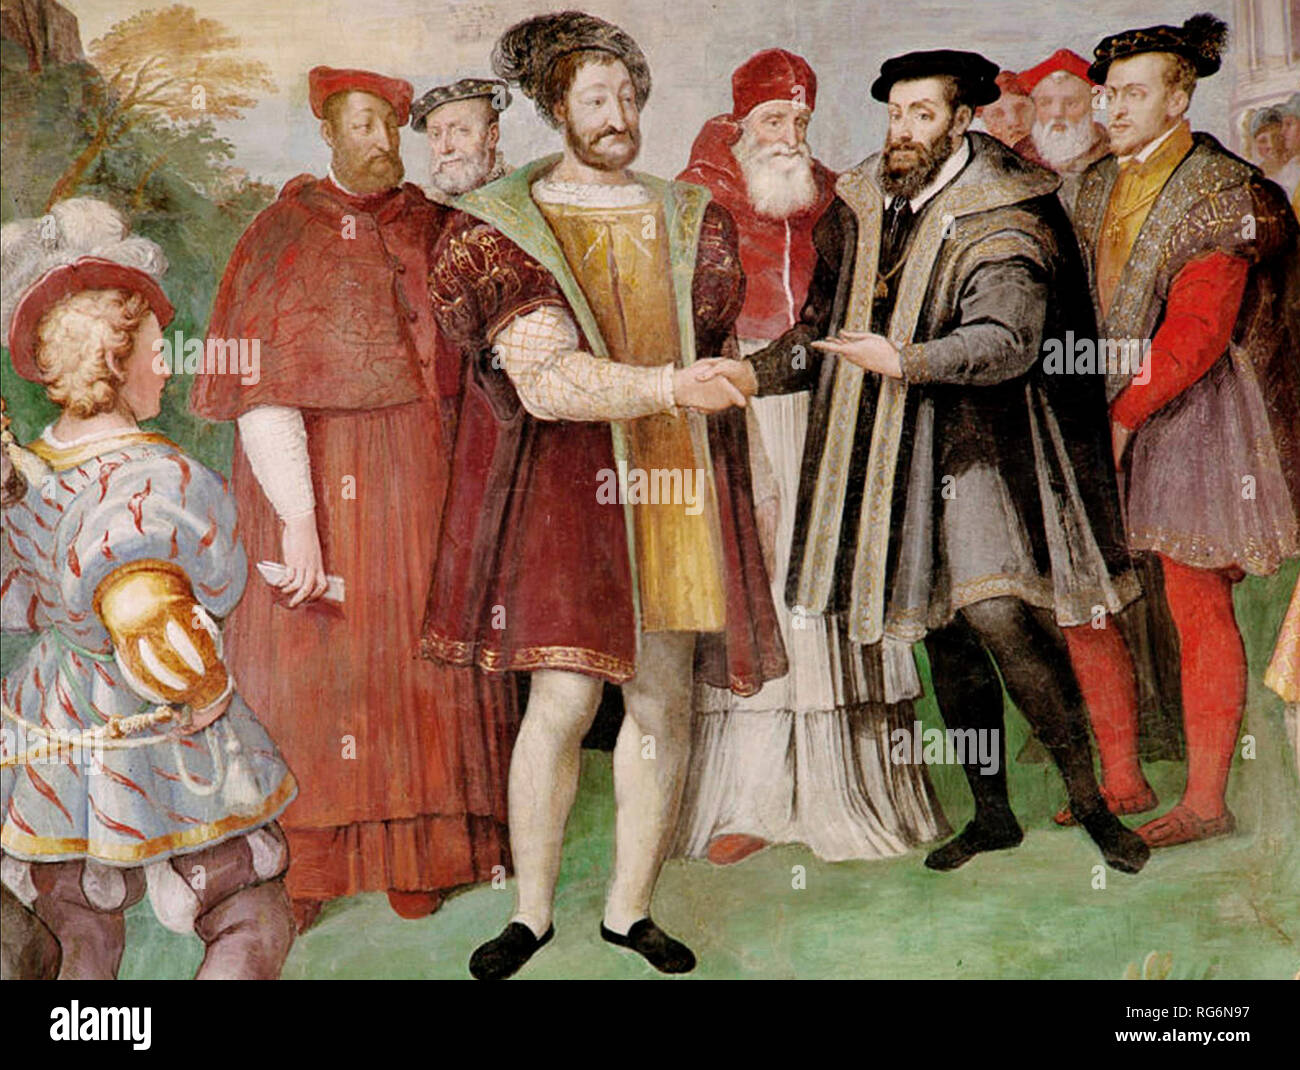 Francis I and Charles V made peace at the Truce of Nice in 1538. Francis actually refused to meet Charles in person, and the treaty was signed in separate rooms.   Truce of Nice 1538. Taddeo Zuccari - Stock Image